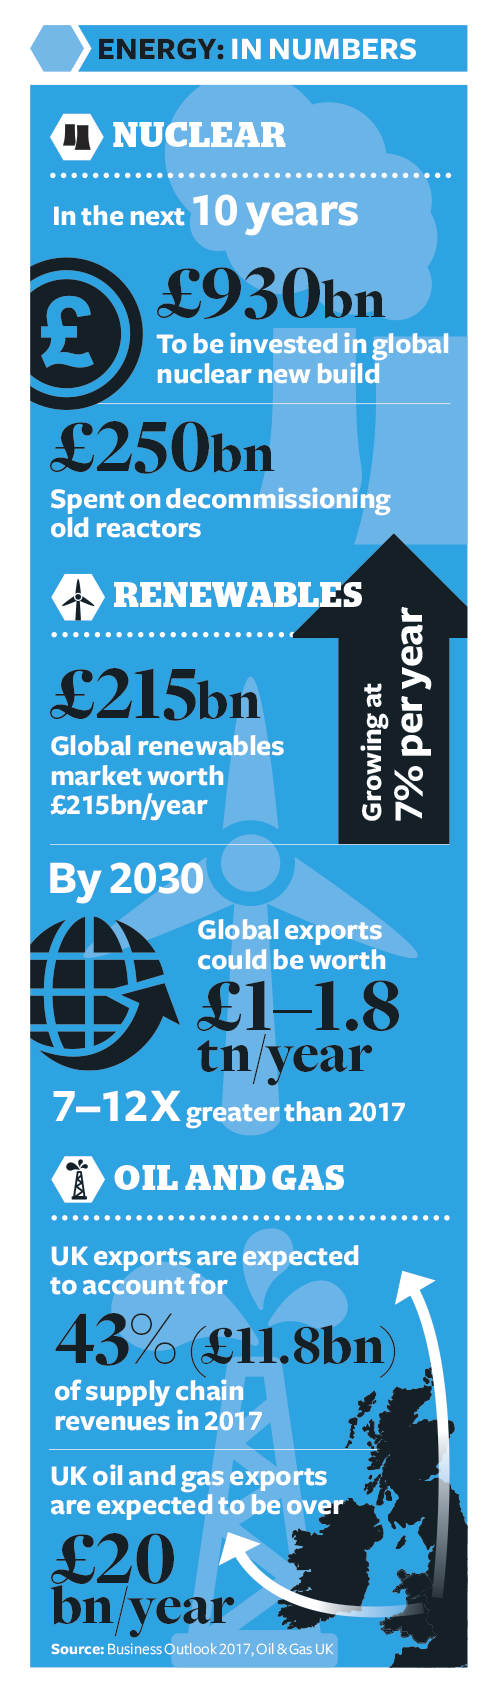 It's time for the UK to become a nation of exporters